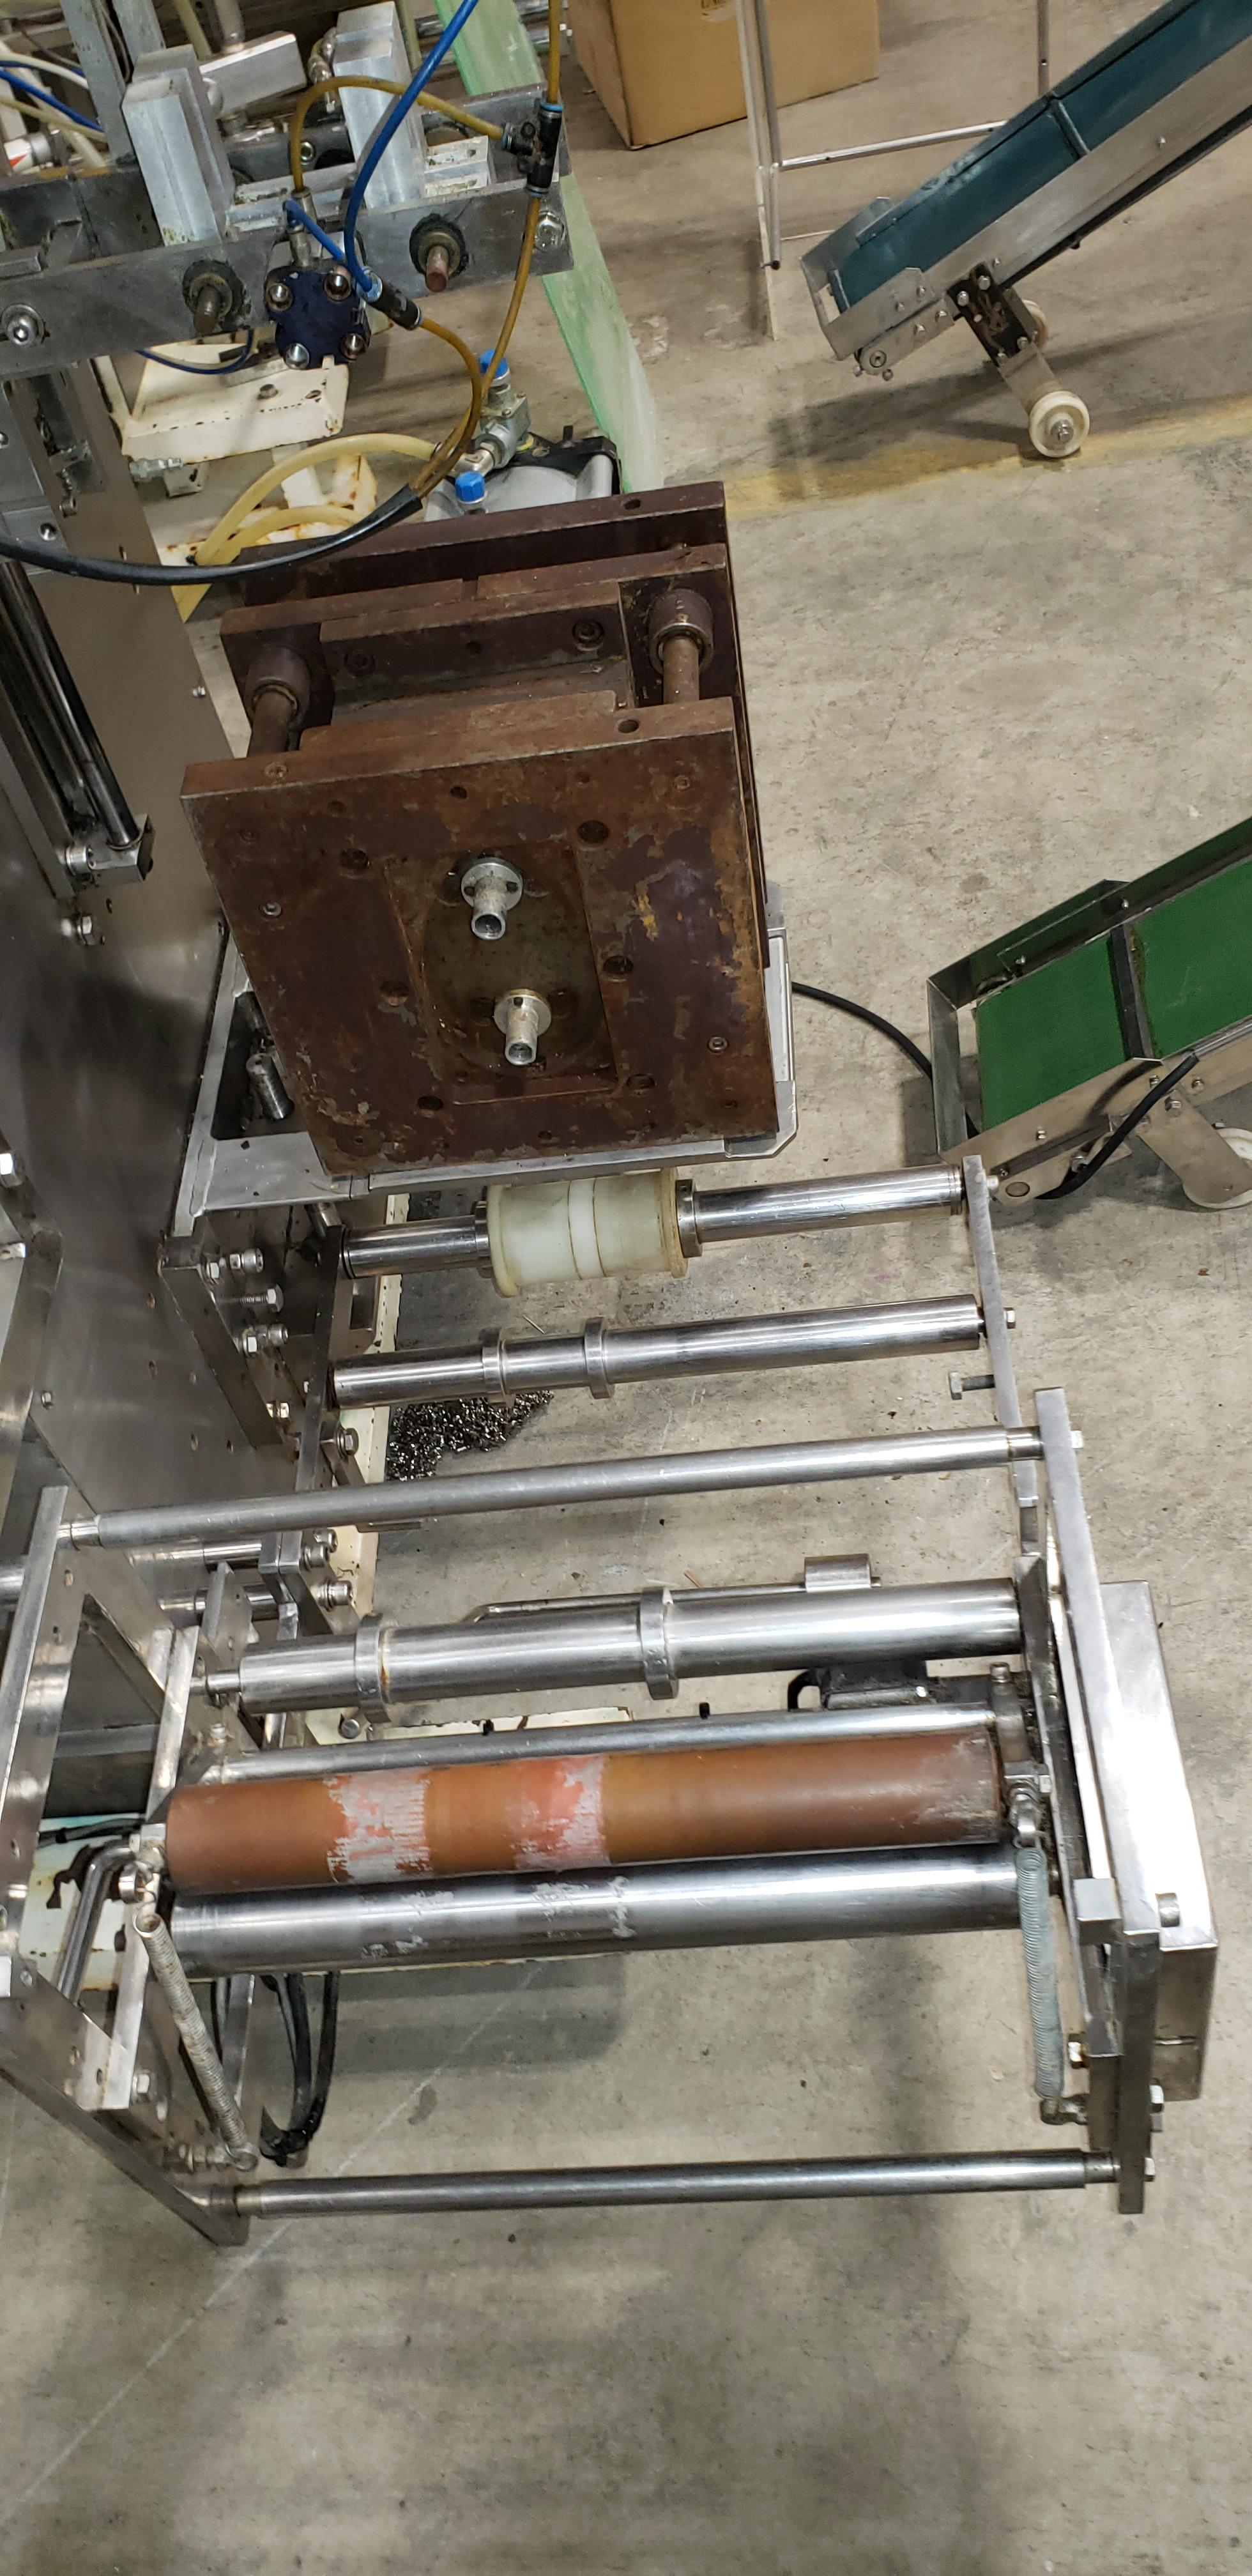 SAVPAK VERTICAL FORM FILL & SEAL MACHINE - Image 9 of 19